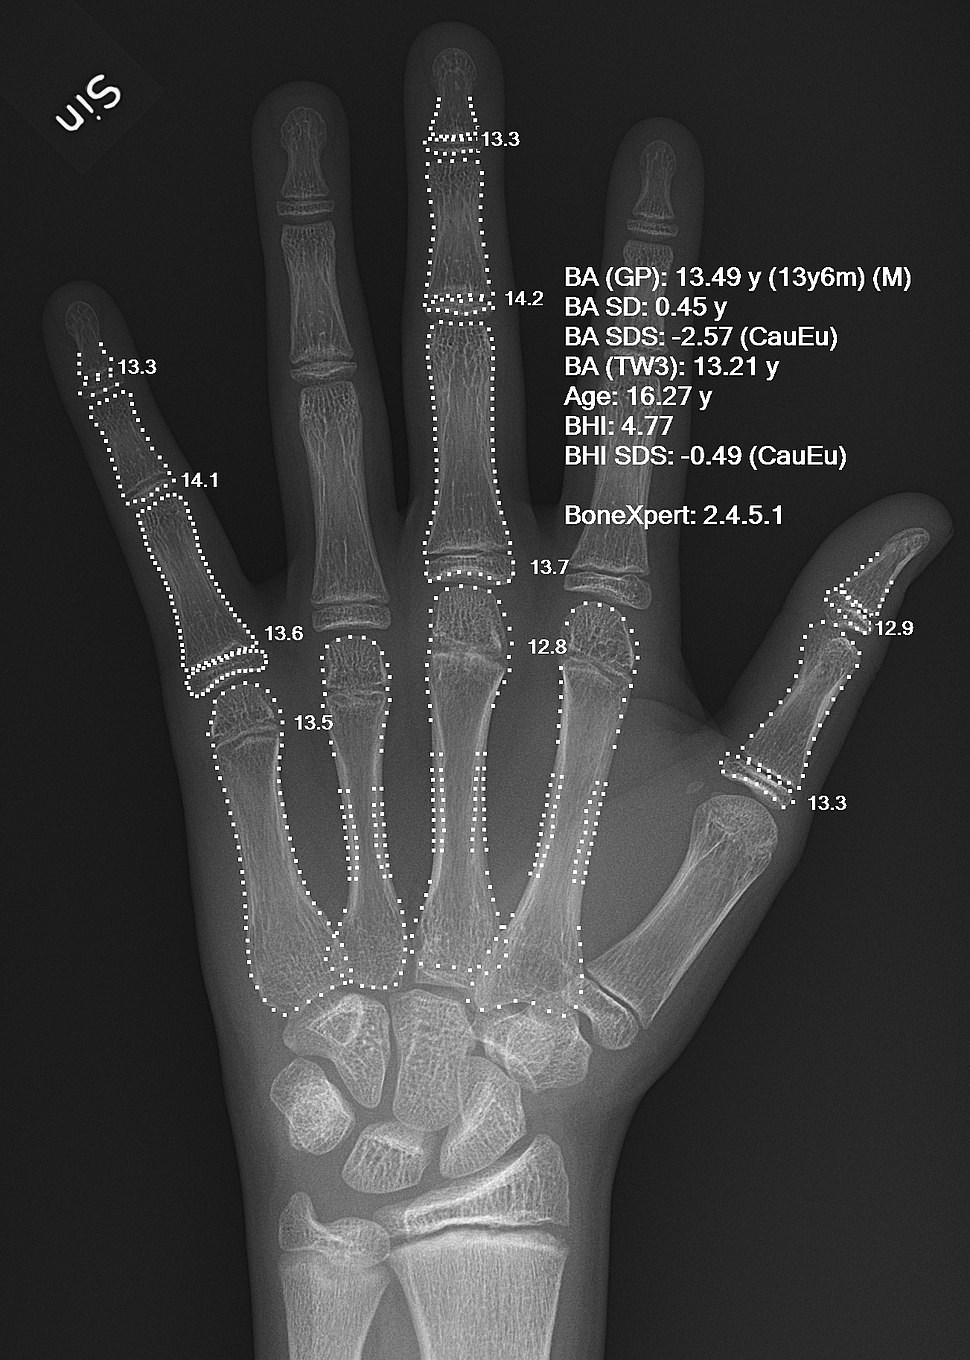 X-ray of a hand with automatic bone age calculation